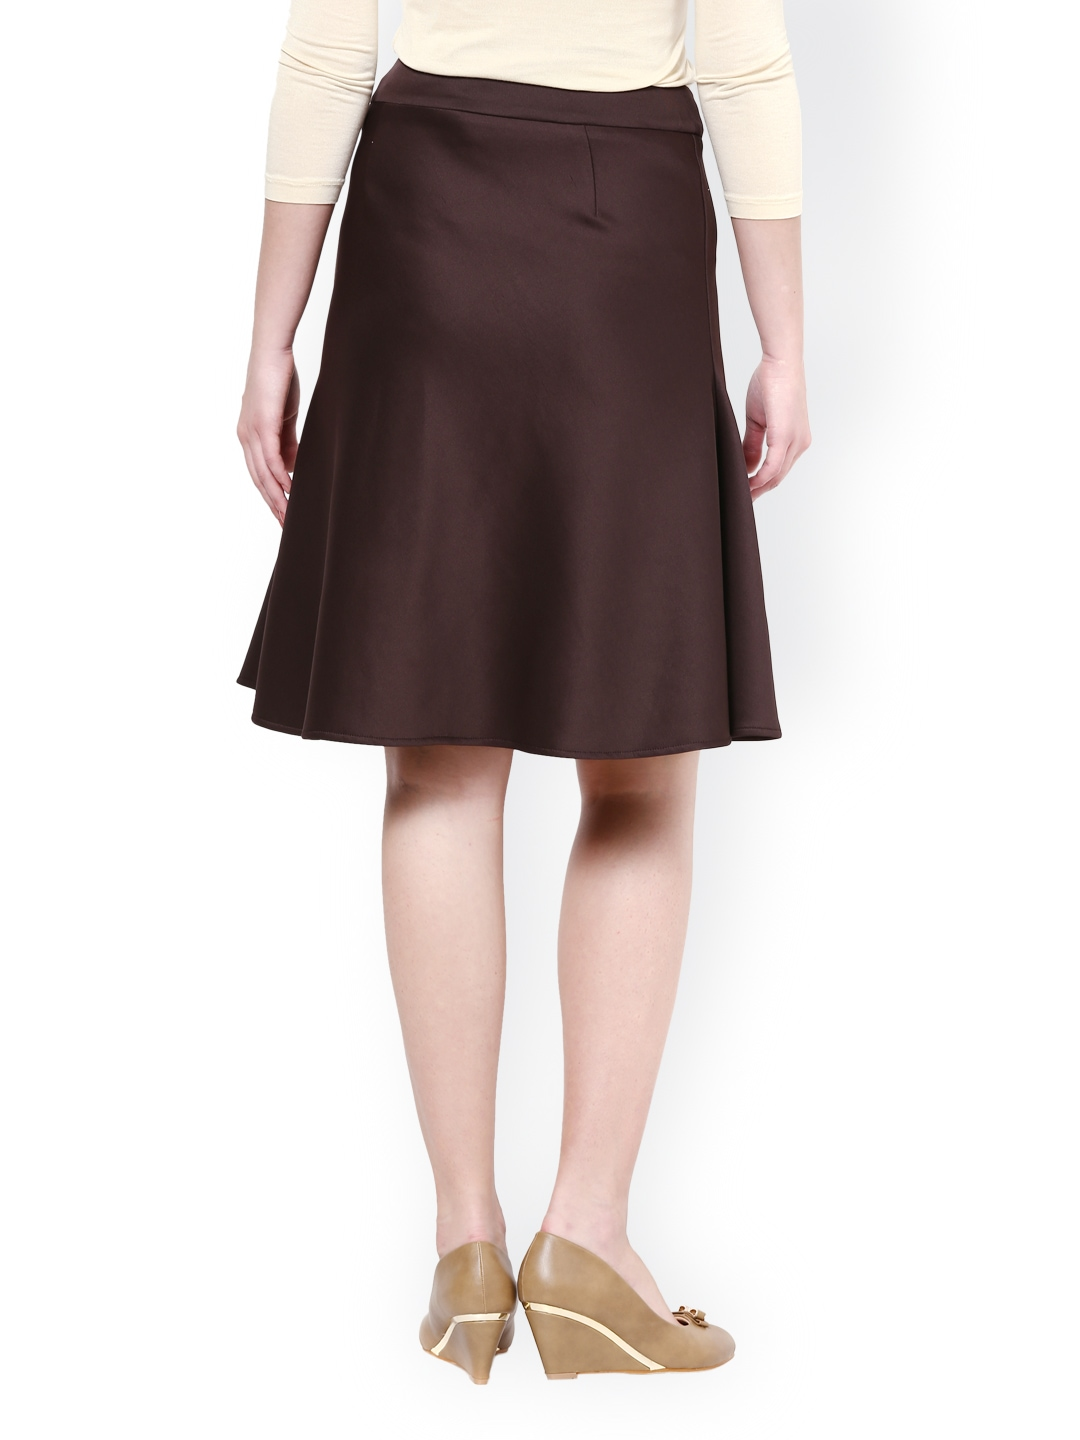 Brown Skirts. Clothing & Shoes / Women's Clothing / Skirts. of Results. Sort by: Twin Hill Women's Hudson Skirt Brown Heather. SALE ends in 2 days. Quick View. NY Collection Womens A-Line Skirt Faux Suede Button Closer. SALE ends in 2 days. Quick View. Sale $